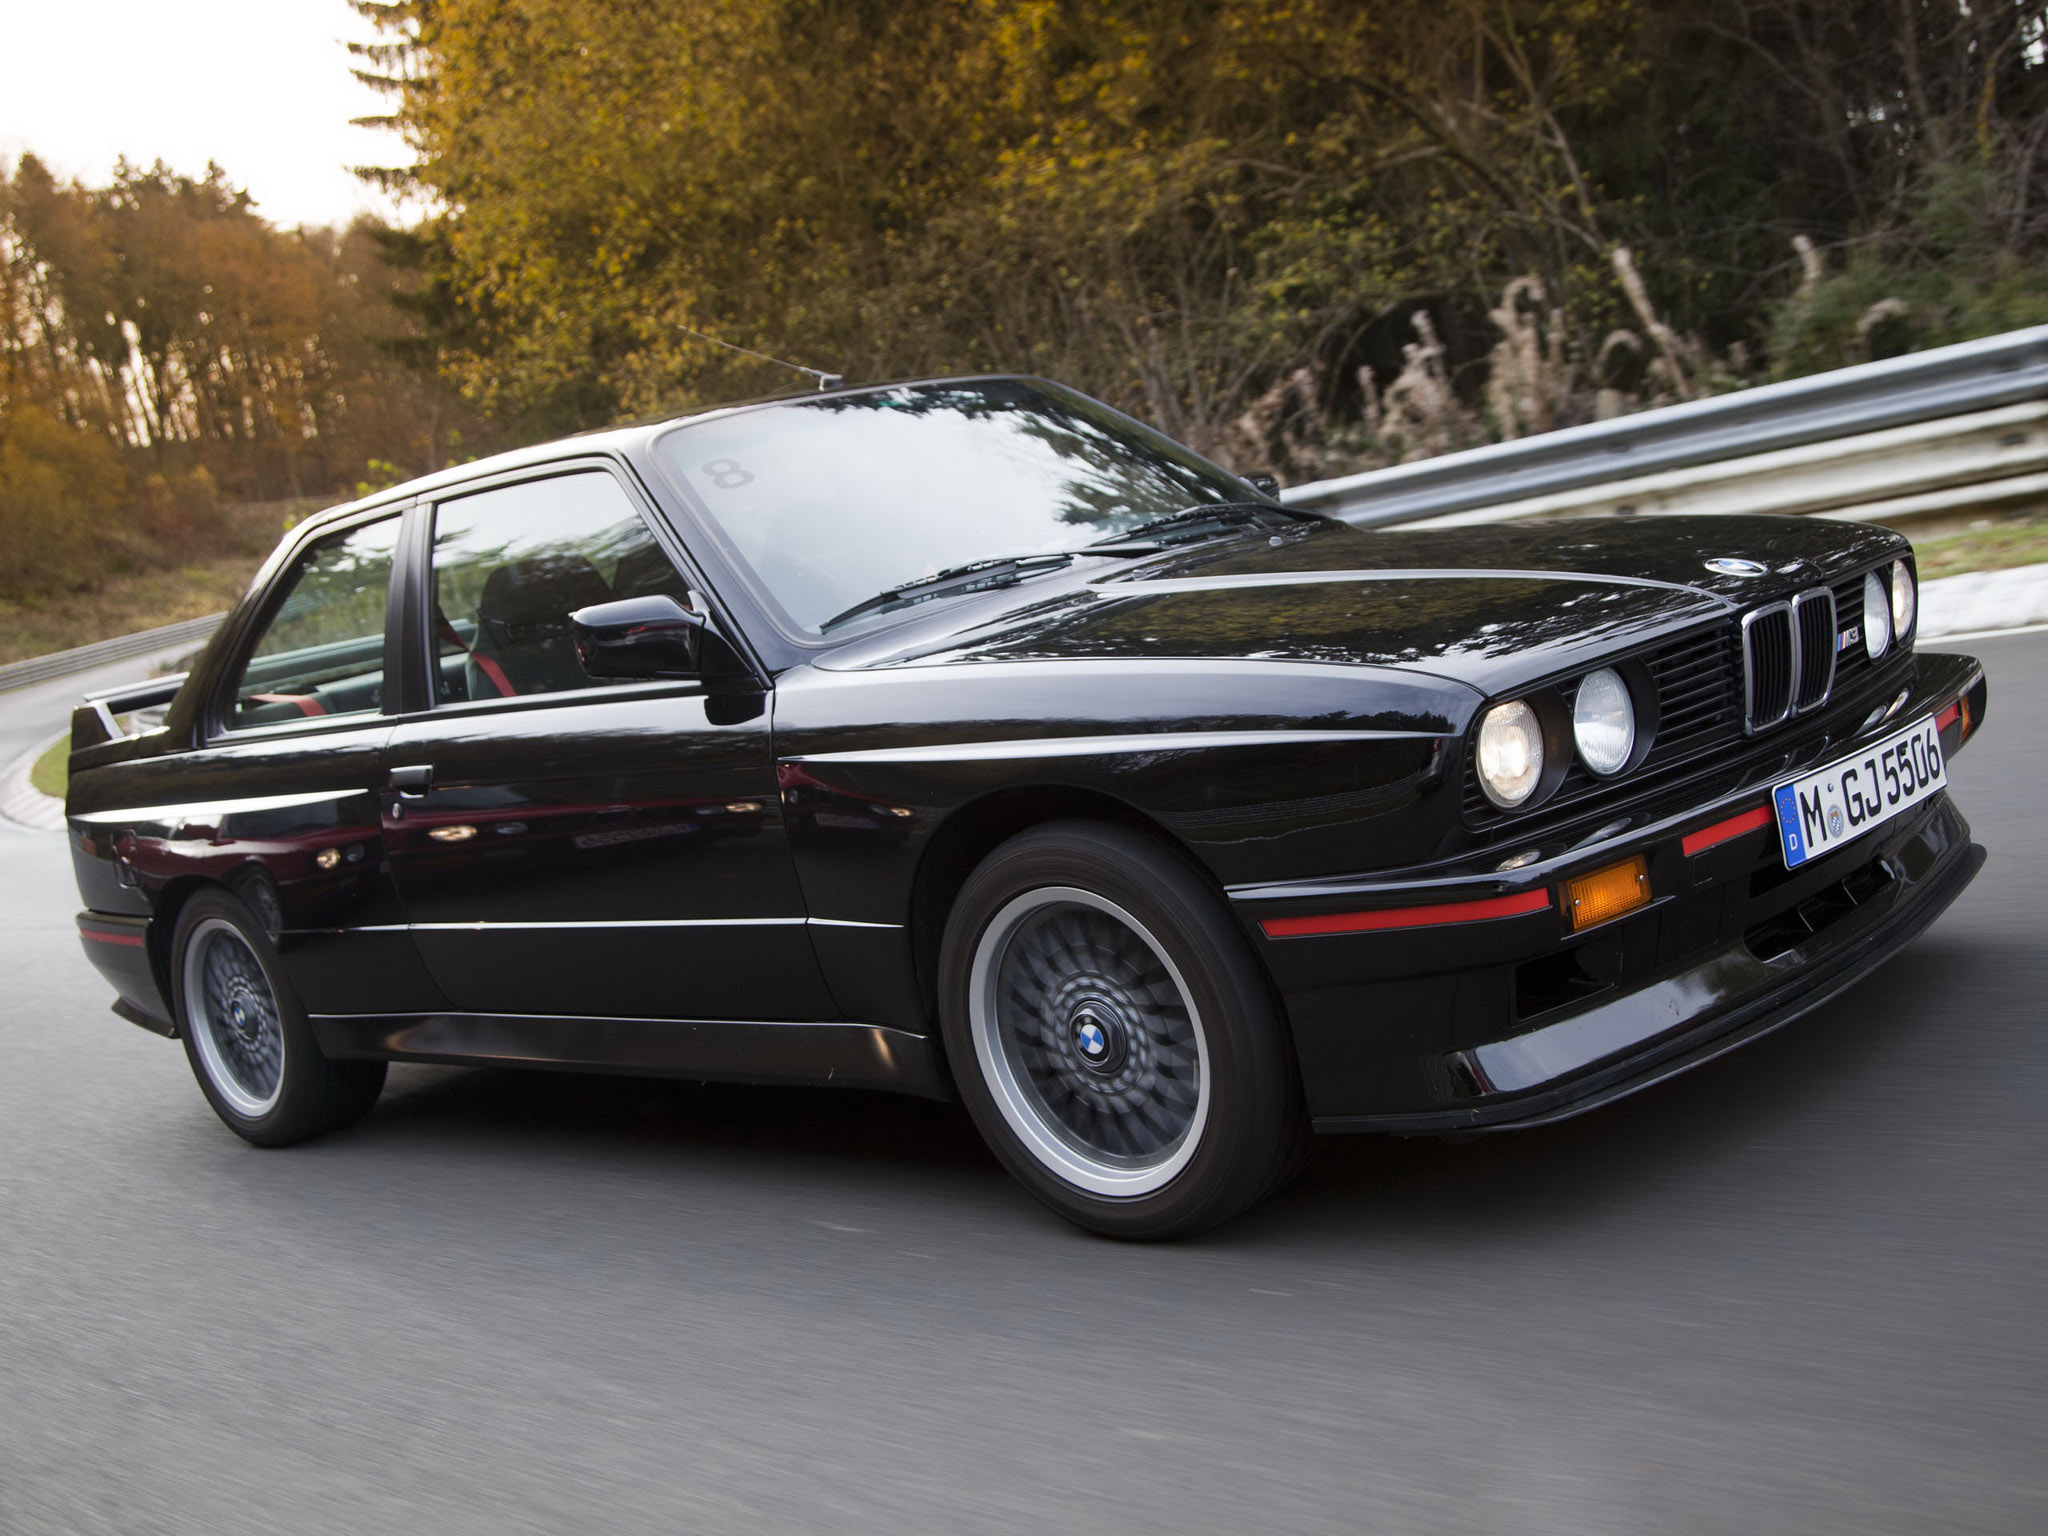 Bmw 3 1990 Review Amazing Pictures And Images Look At